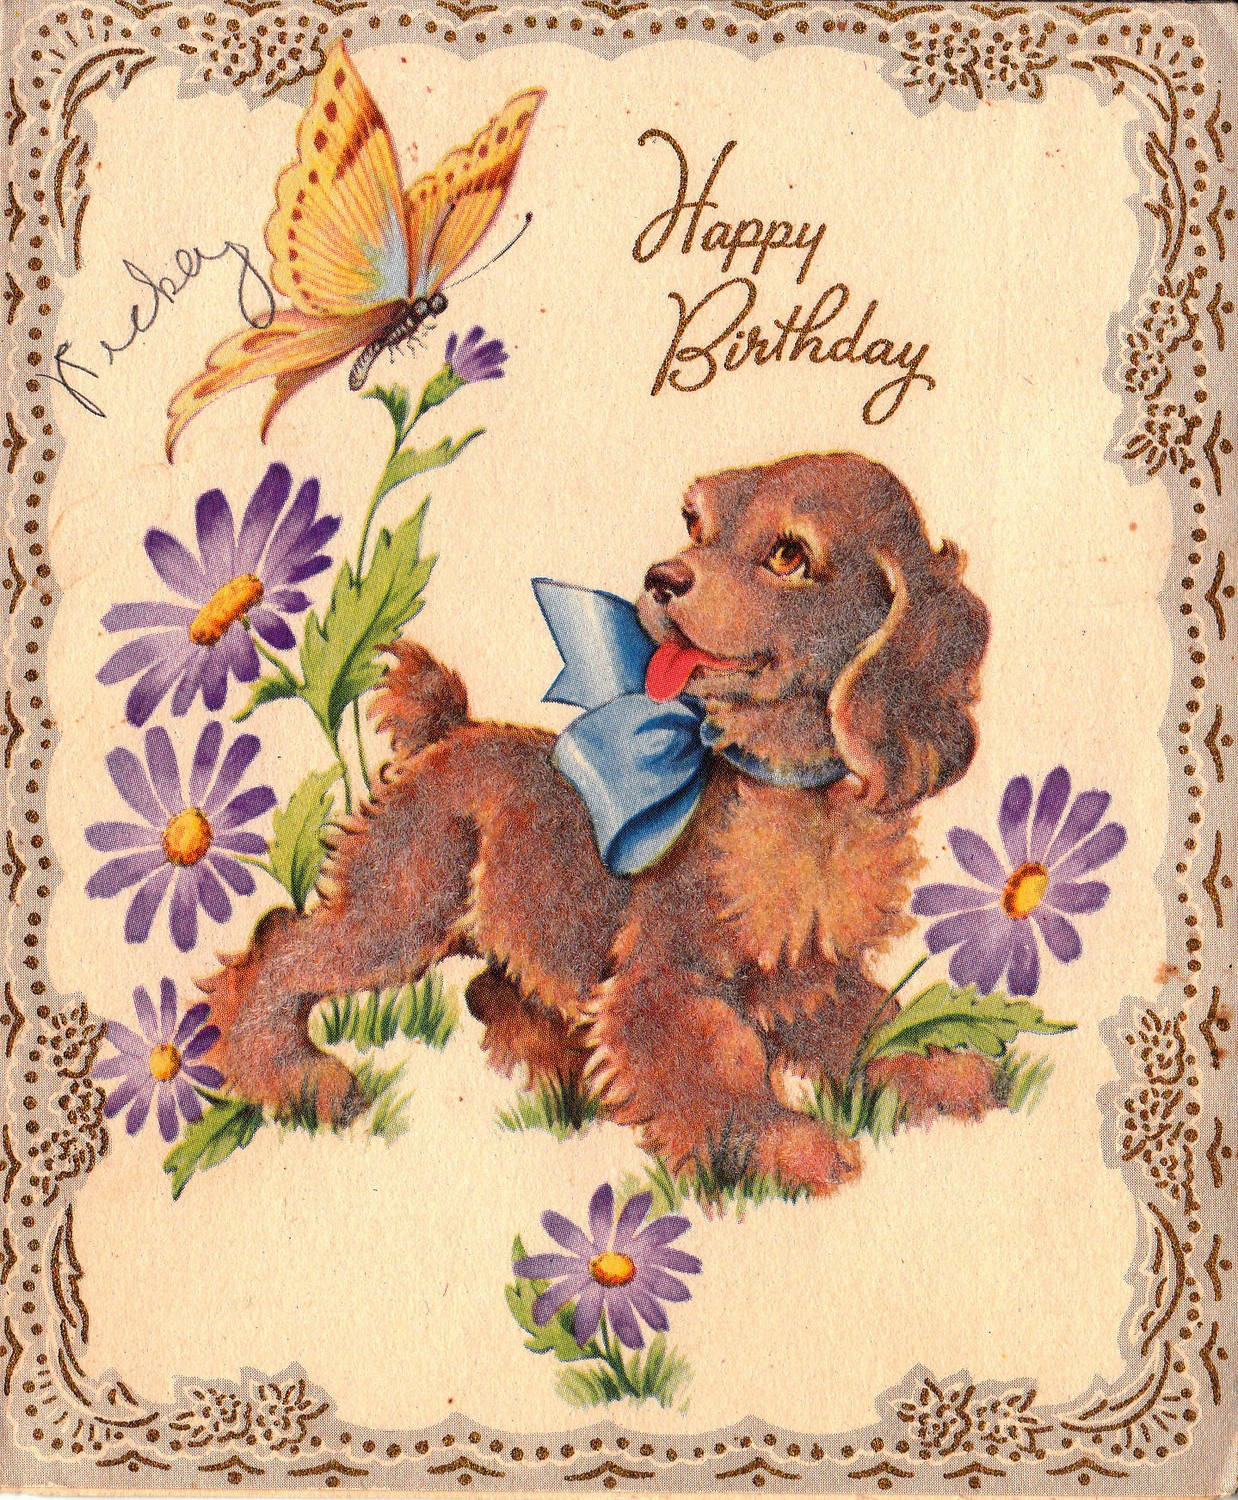 Free vintage puppy birthday card free vintage illustrations free vintage illustrations kristyandbryce Choice Image